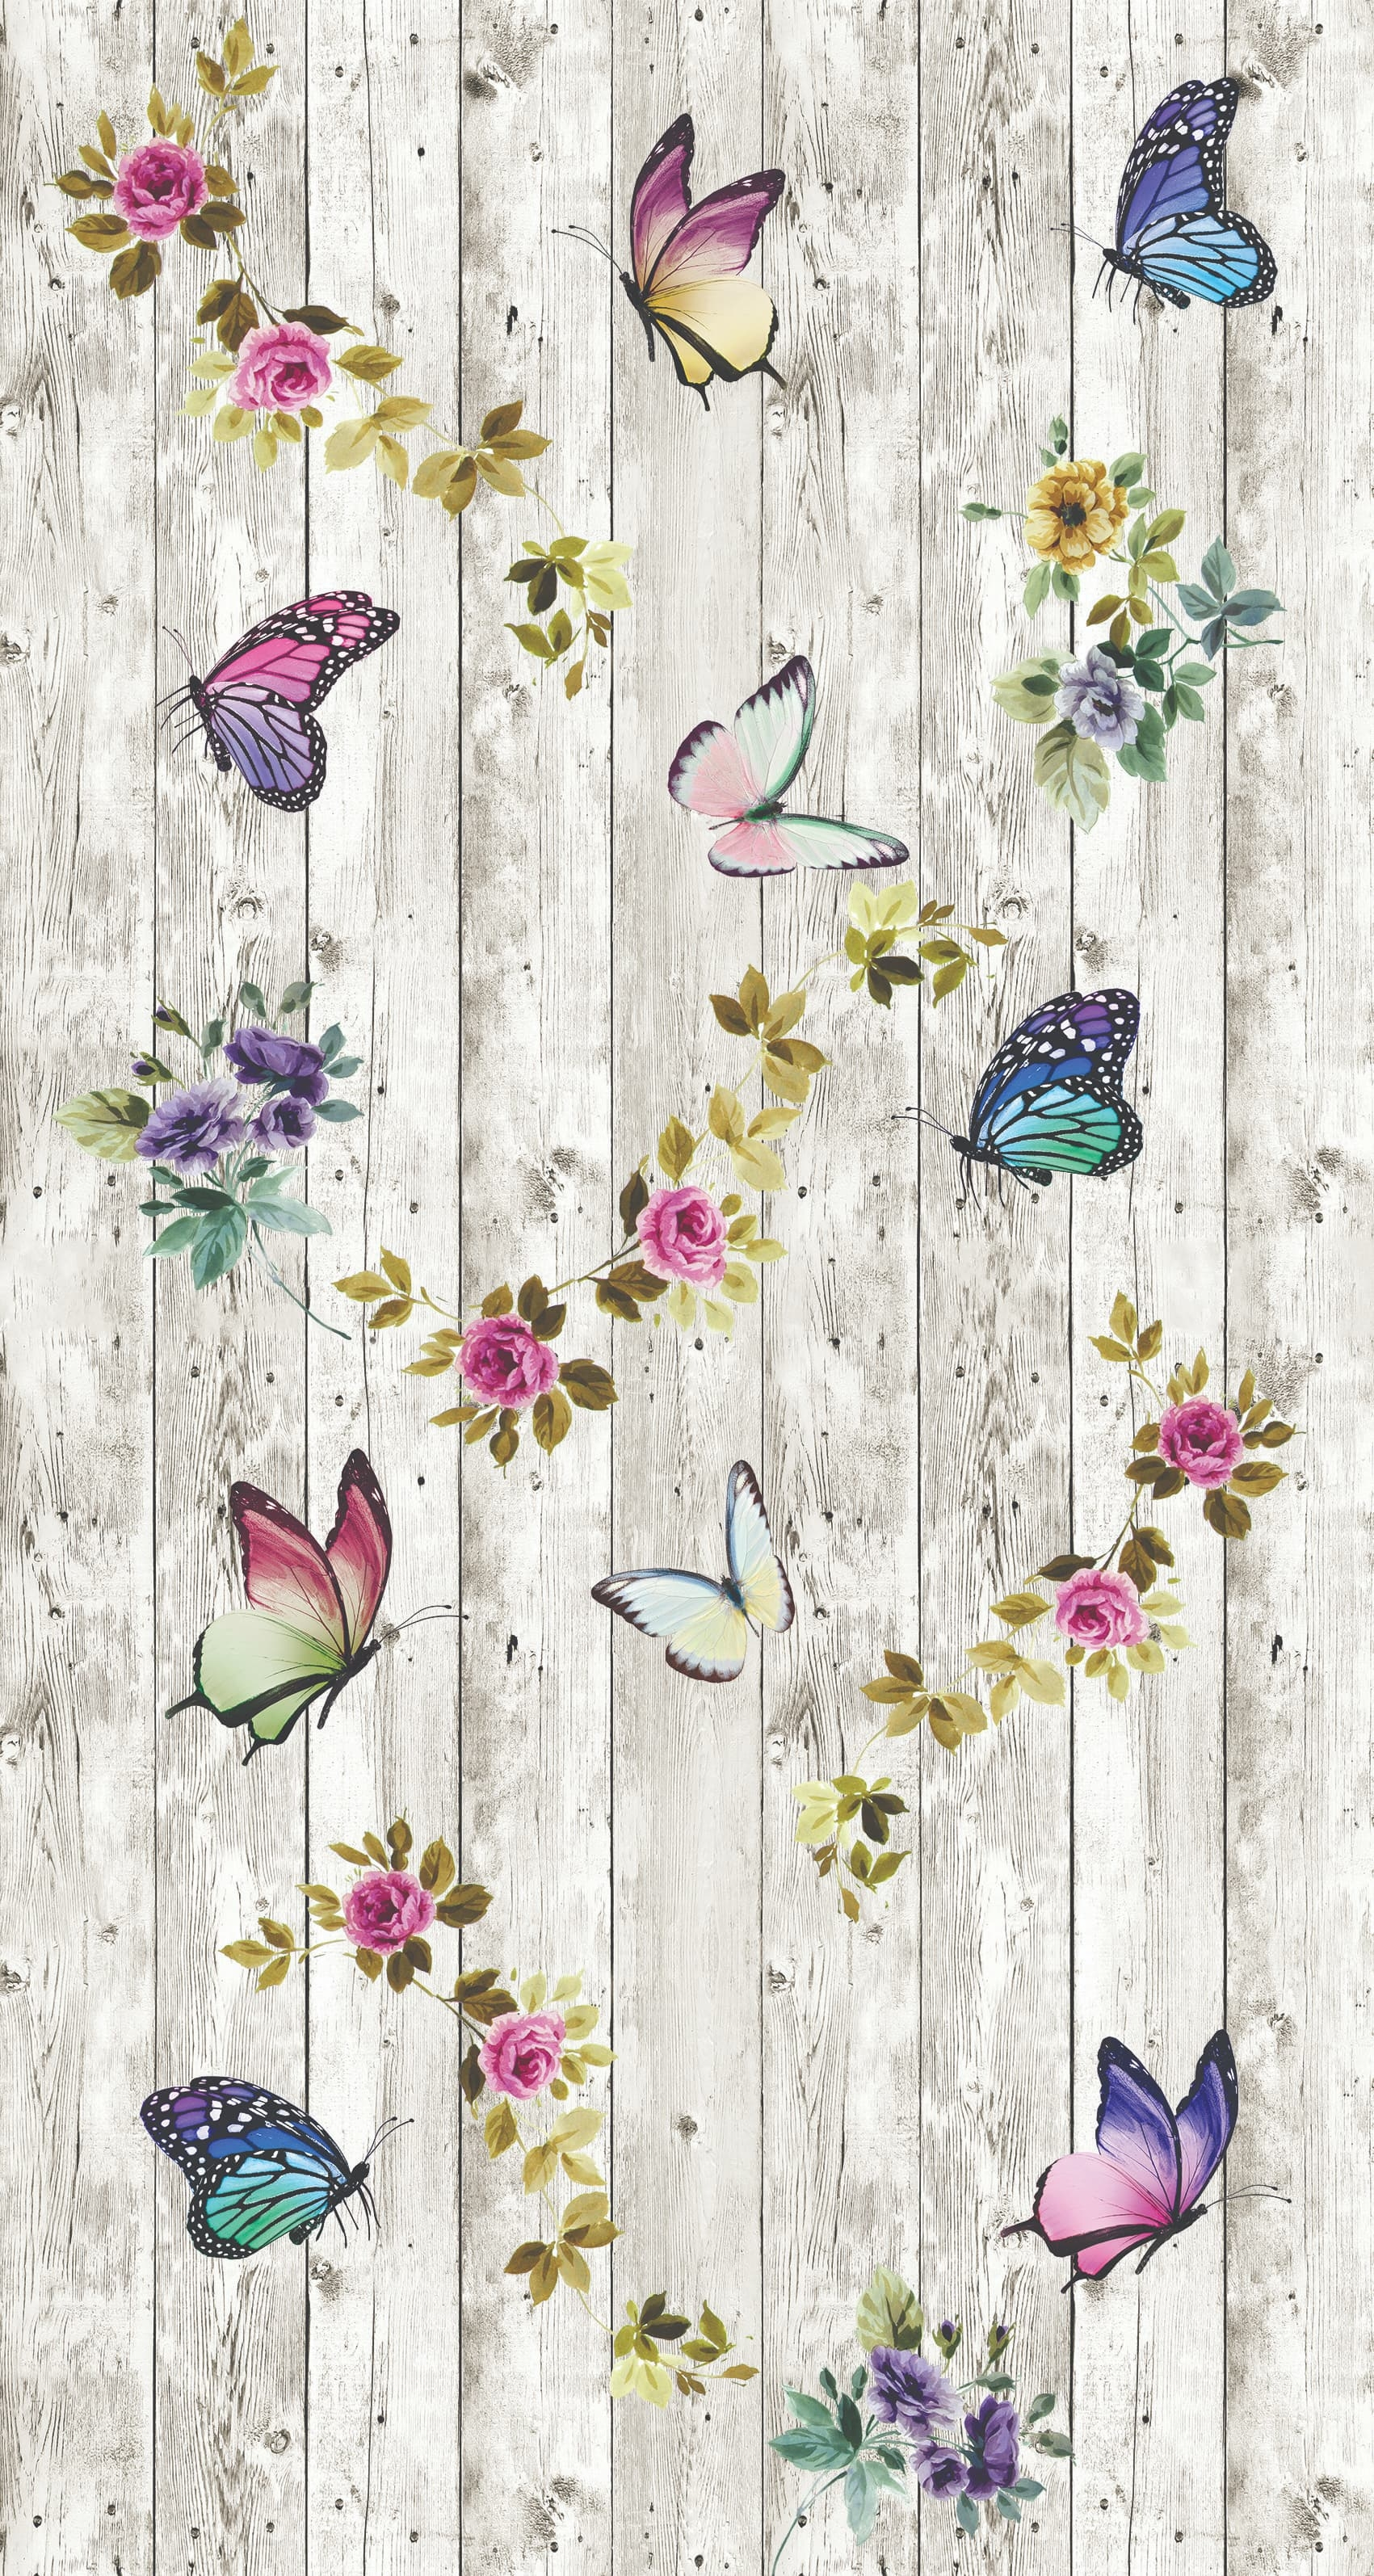 Covor Butterflowers 5016 Multicolor, 80 x 150 cm imagine